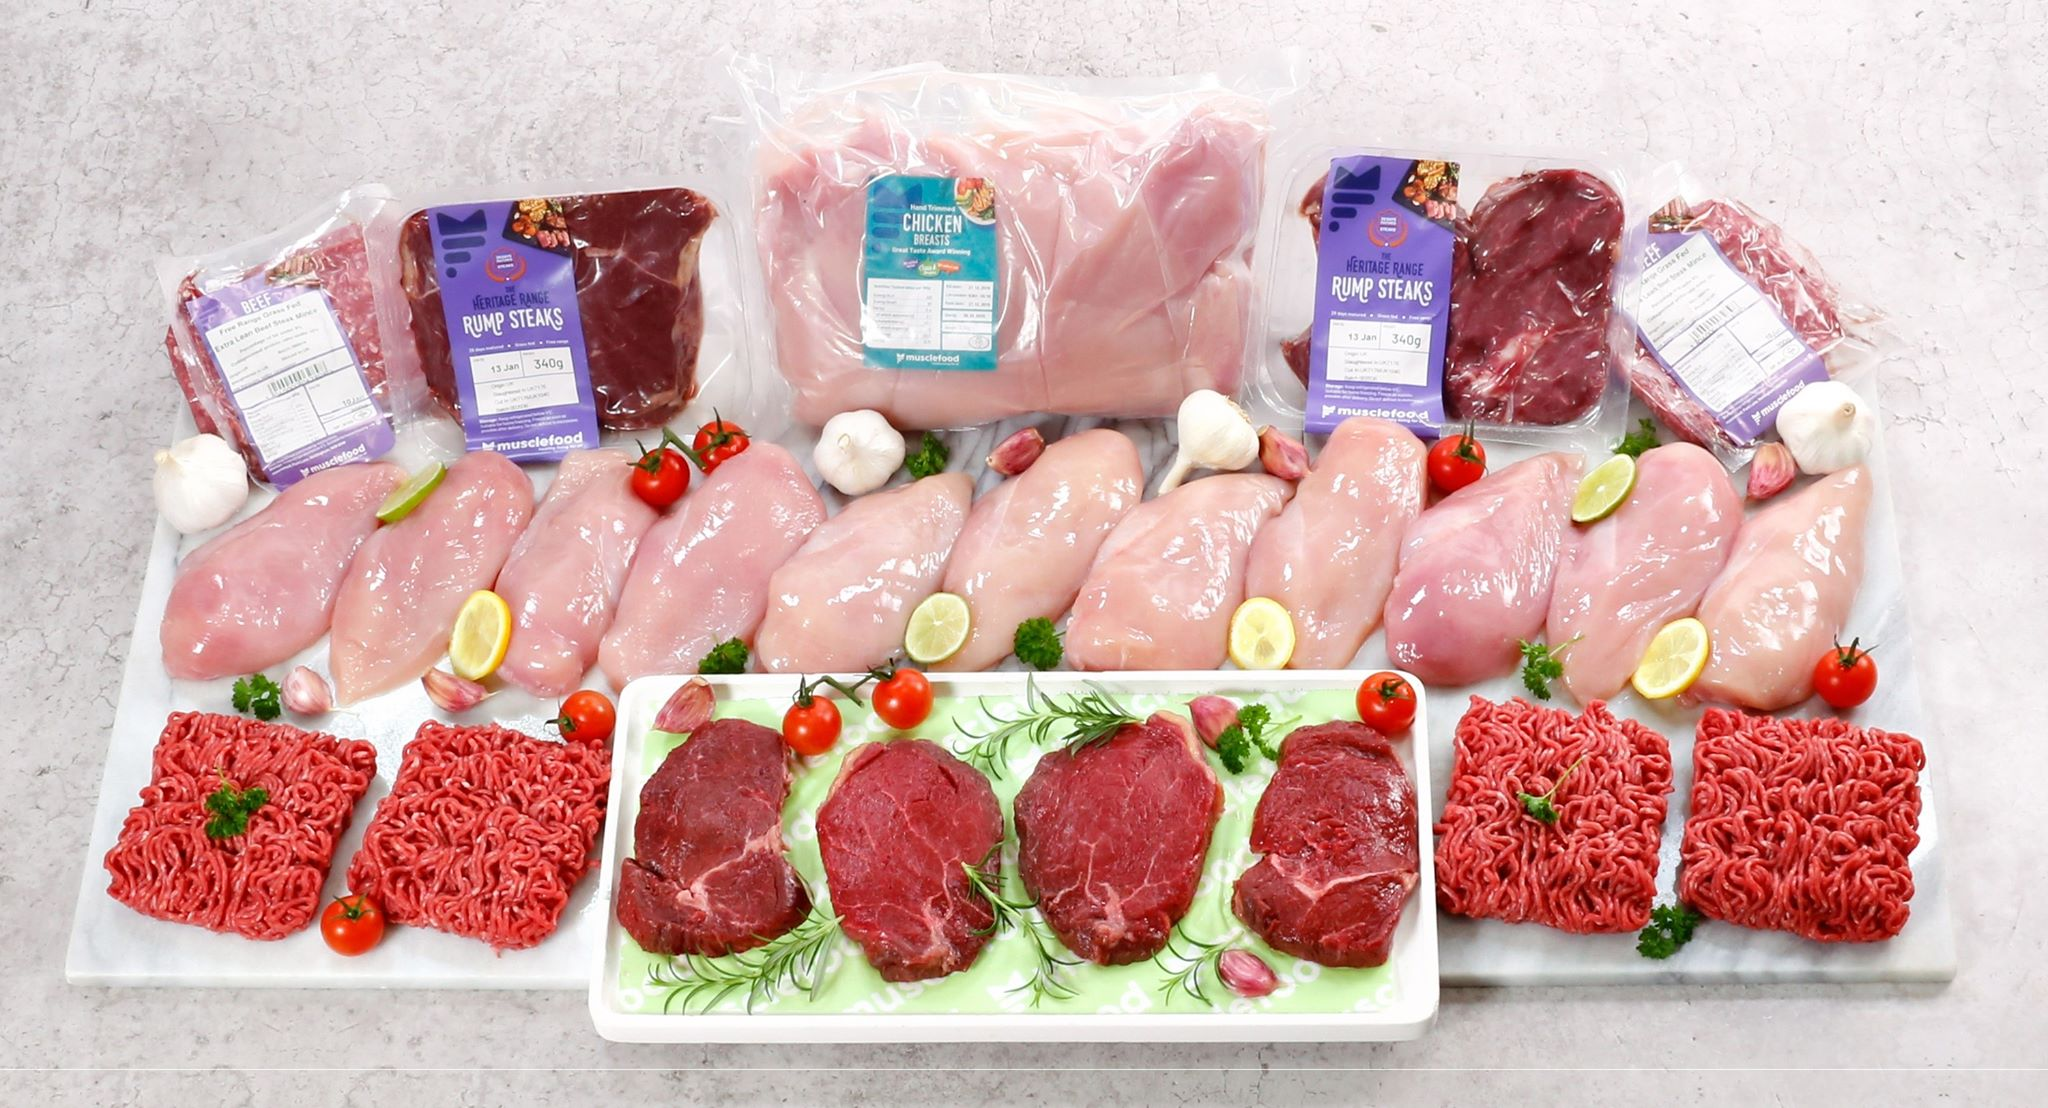 DON'T MISS this Muscle Food meat offer delivered fresh to your door!